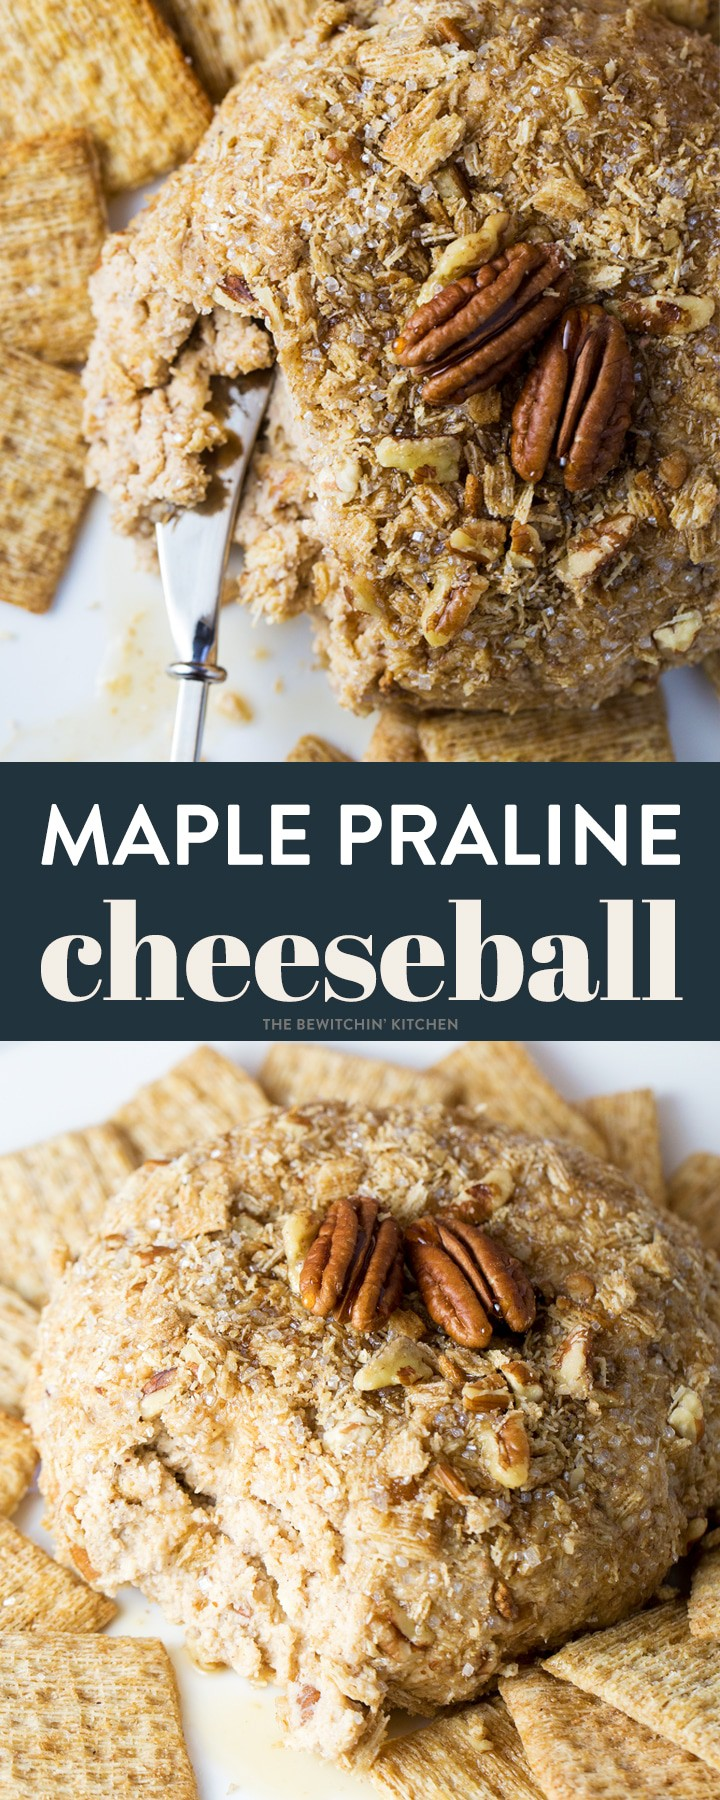 This maple praline cheeseball is a must have Christmas party appetizer. Sweet maple syrup, cinnamon, and crunchy pecans make this holiday cheeseball a favorite. Serve this delicious dessert dip with cinnamon crackers and fruit. #cheeseball #dessertcheeseball #brownsugarcheesecake #pralinedessert #pralinecheesecake #praline